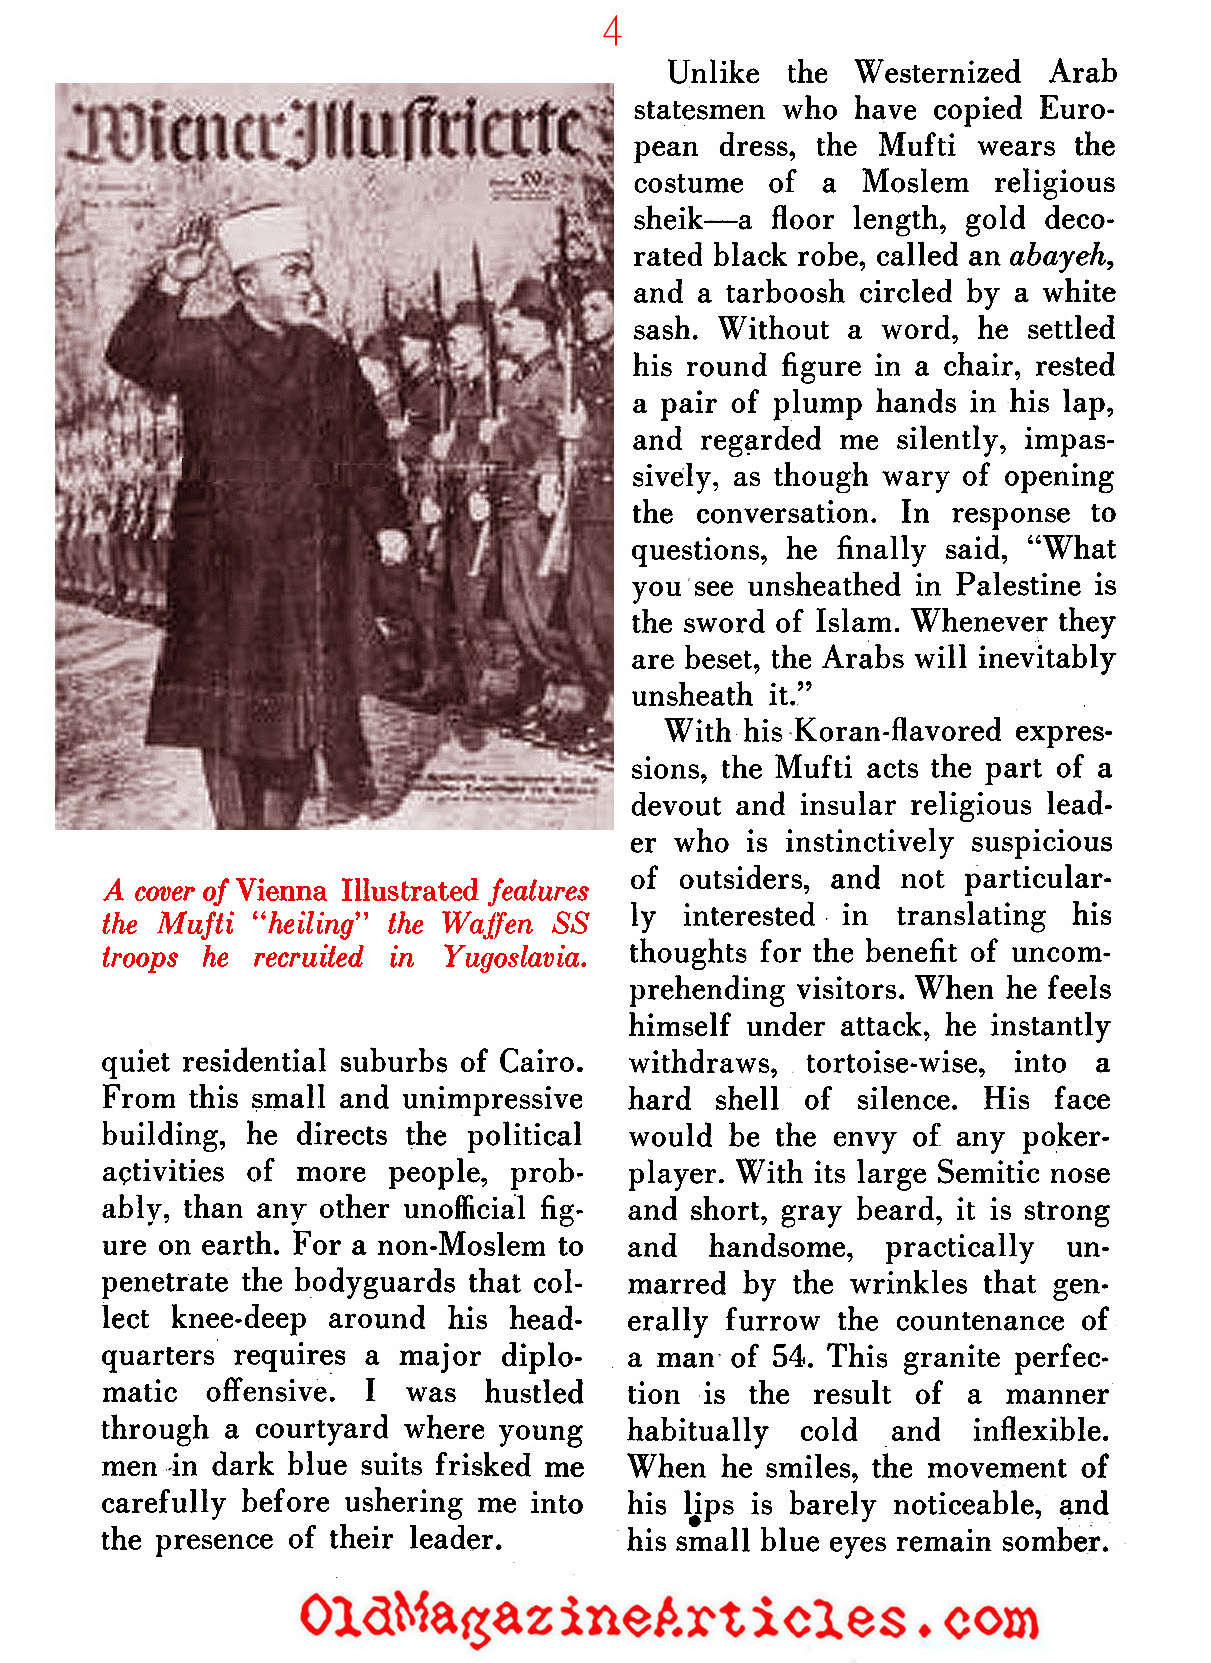 The Nazi's Man in British Palestine ('48 Magazine, 1948)